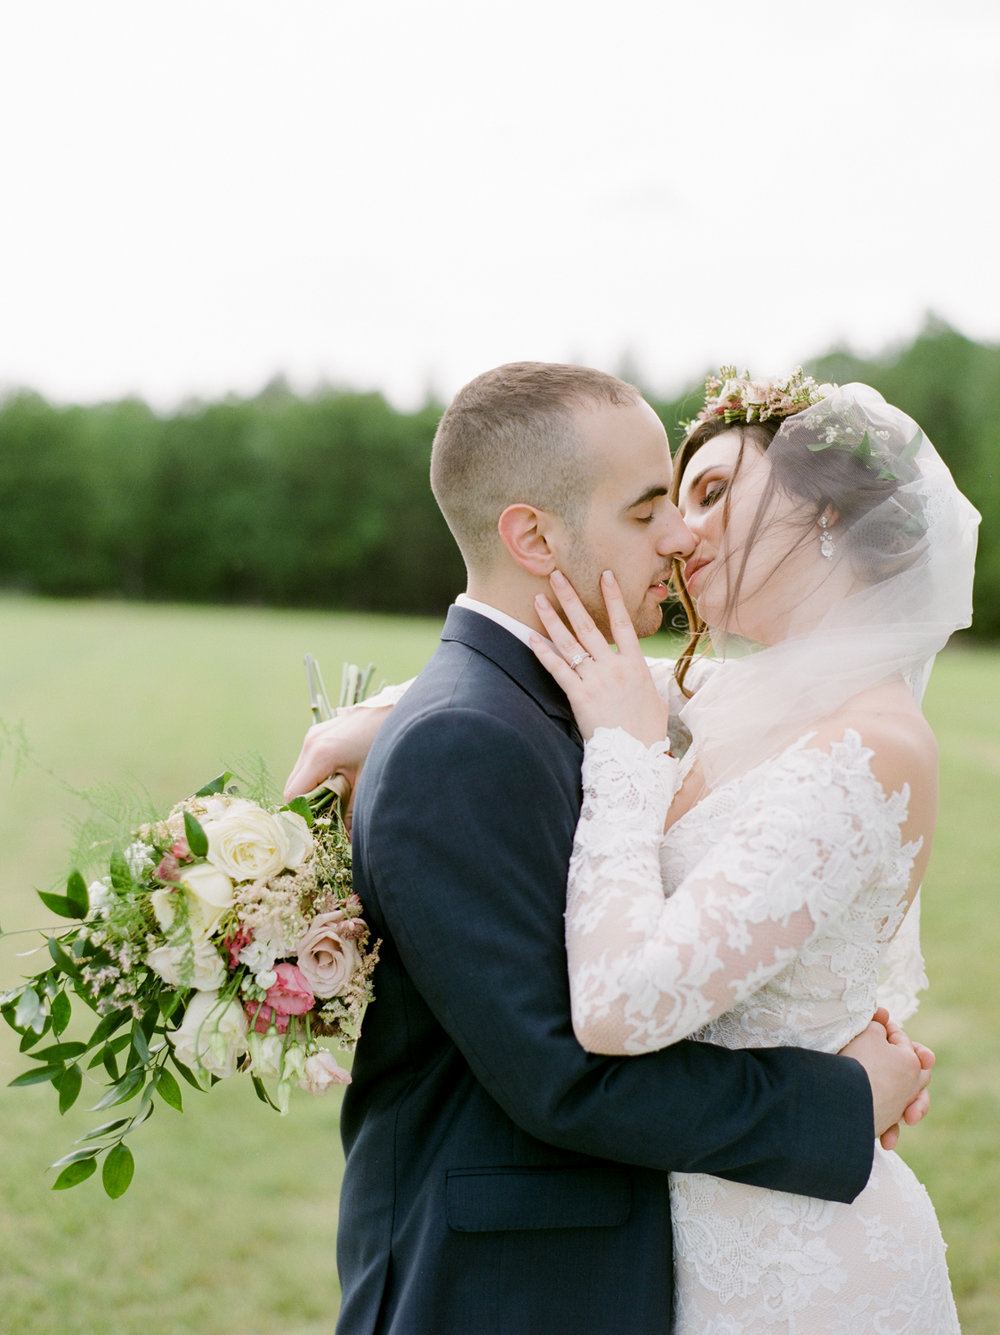 Fine art wedding photographer in Connecticut